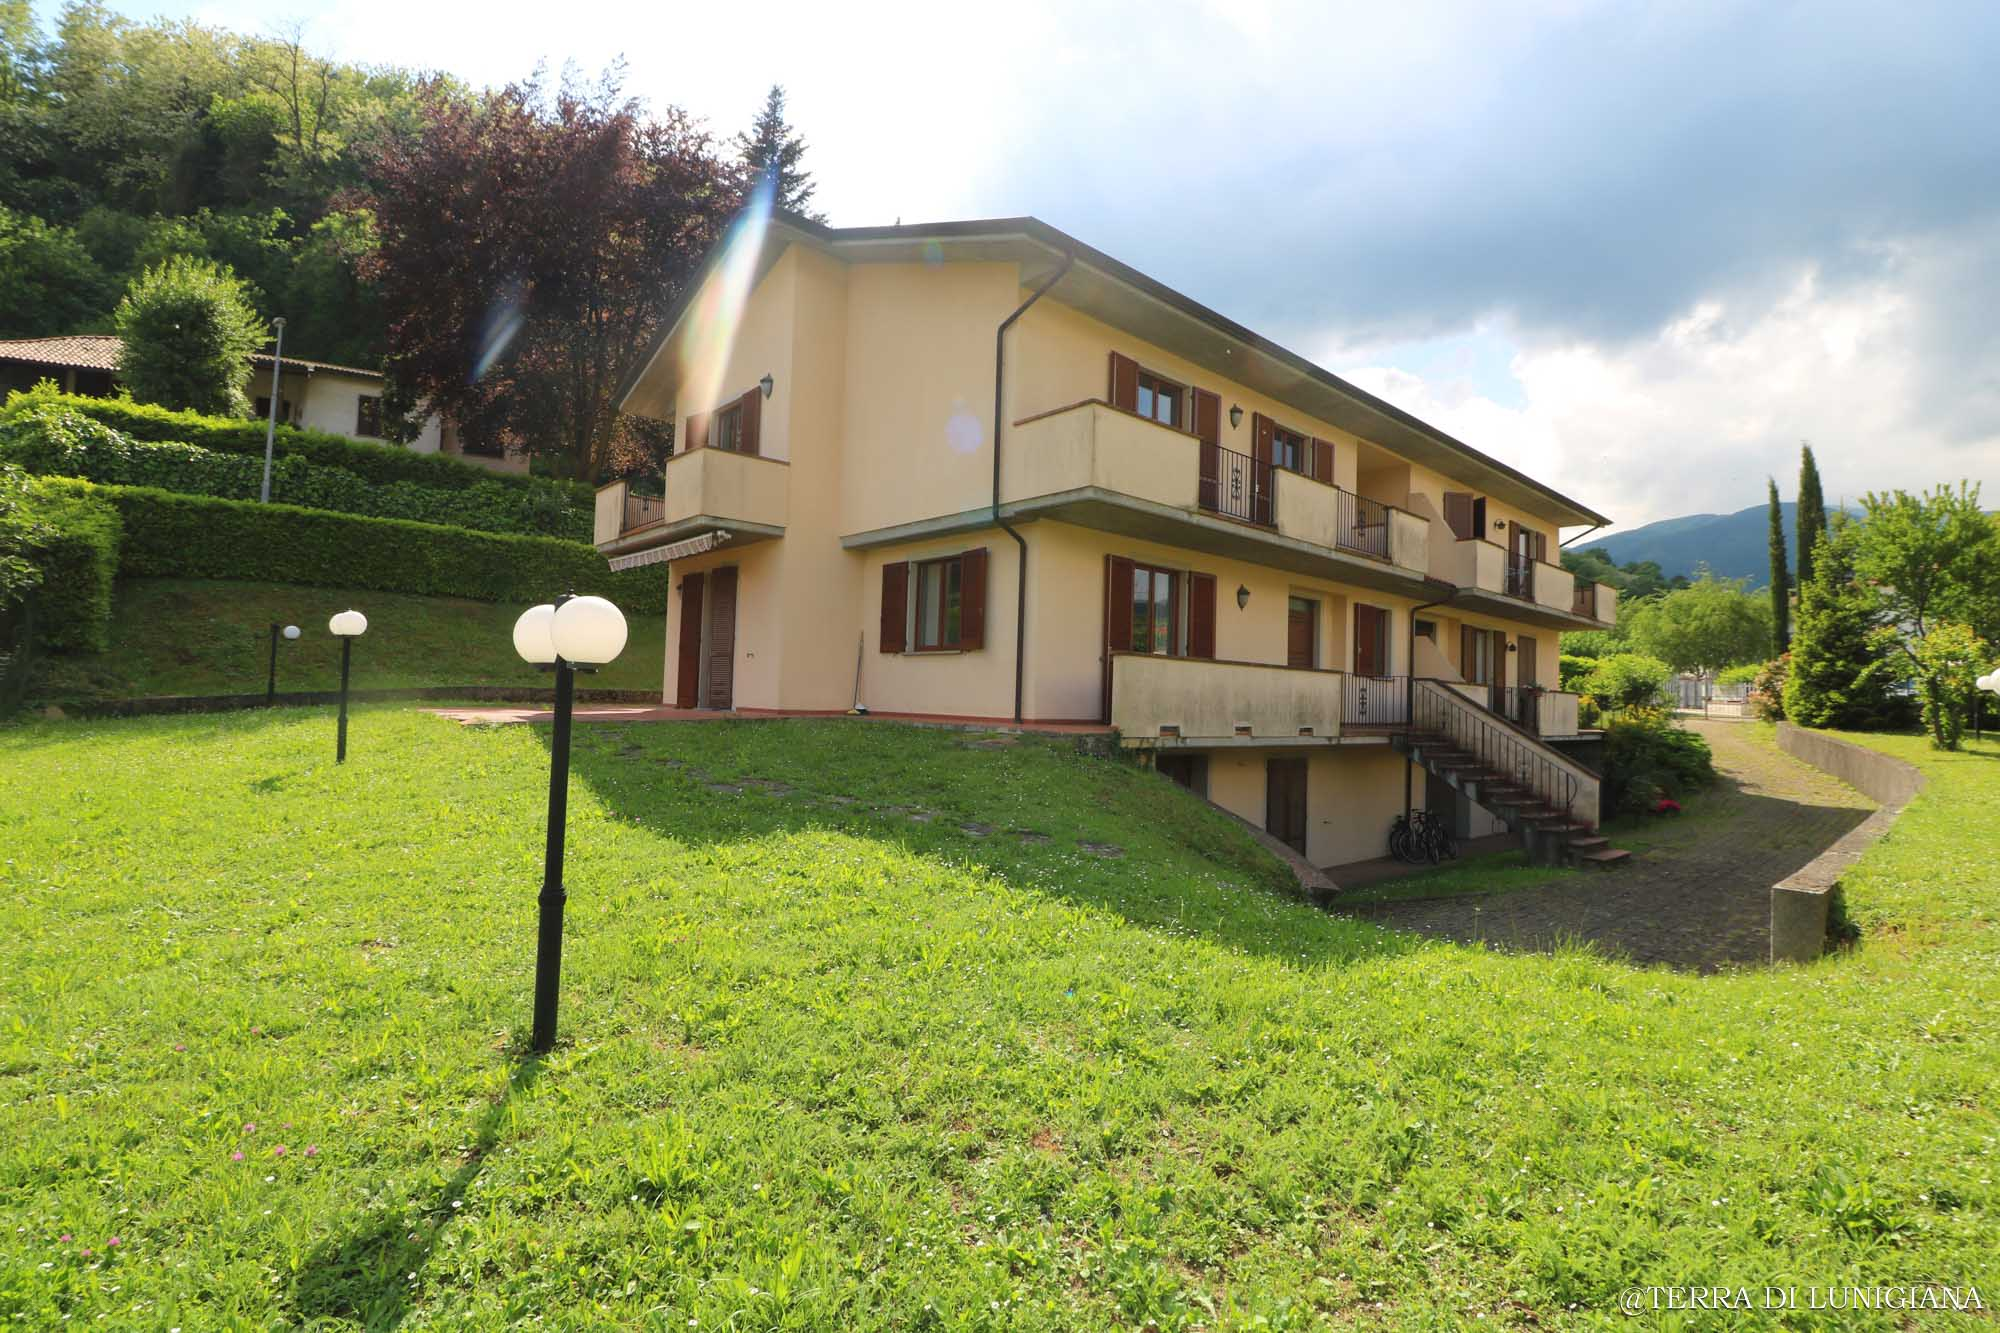 LA PRUGNA – 5 Bedrooms Villa with Garage and private Garden